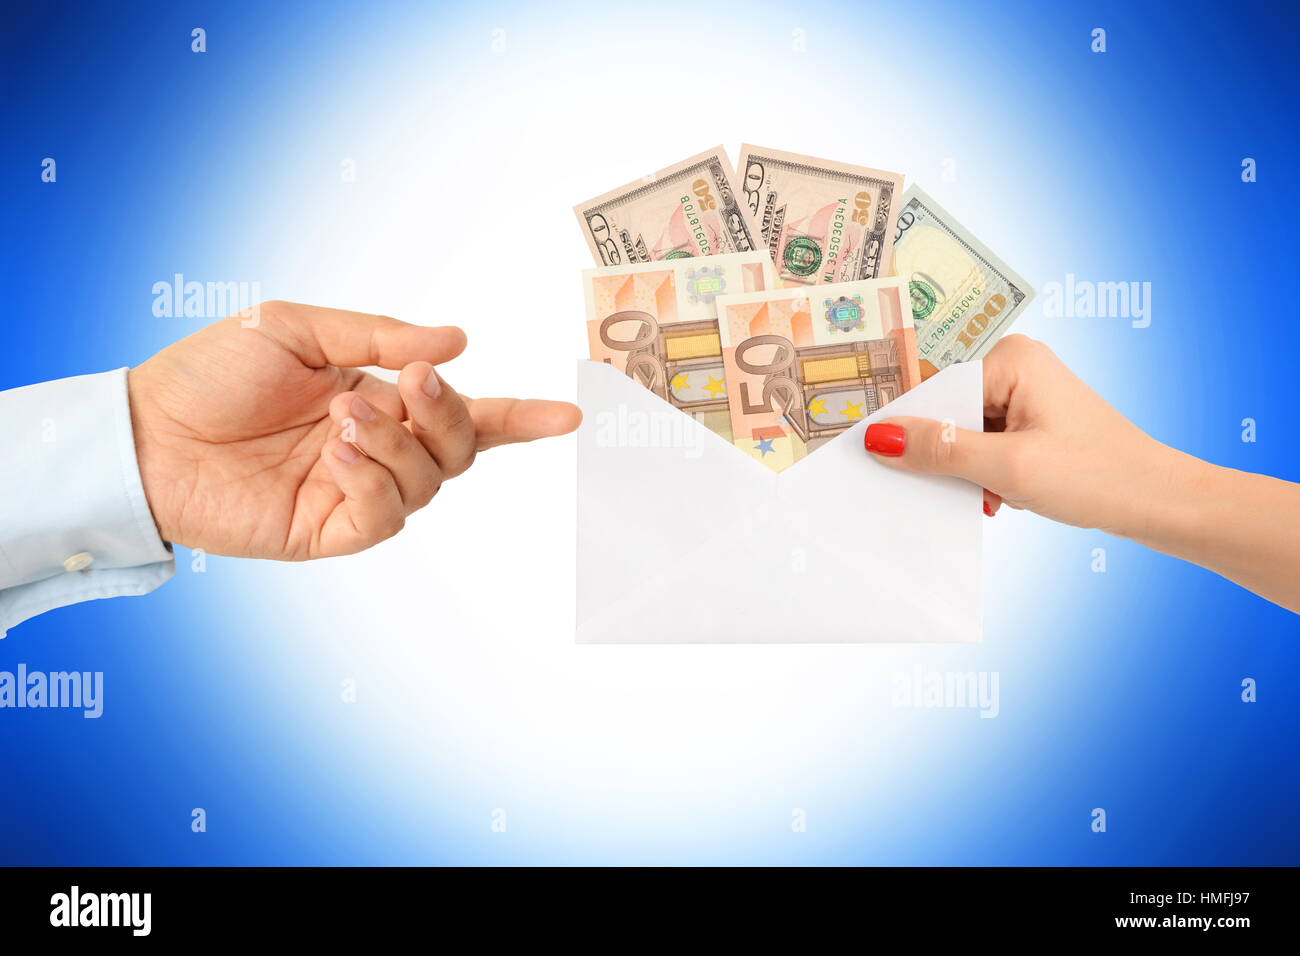 Give a money envelope to a business man as a bribe or financial reward - Stock Image